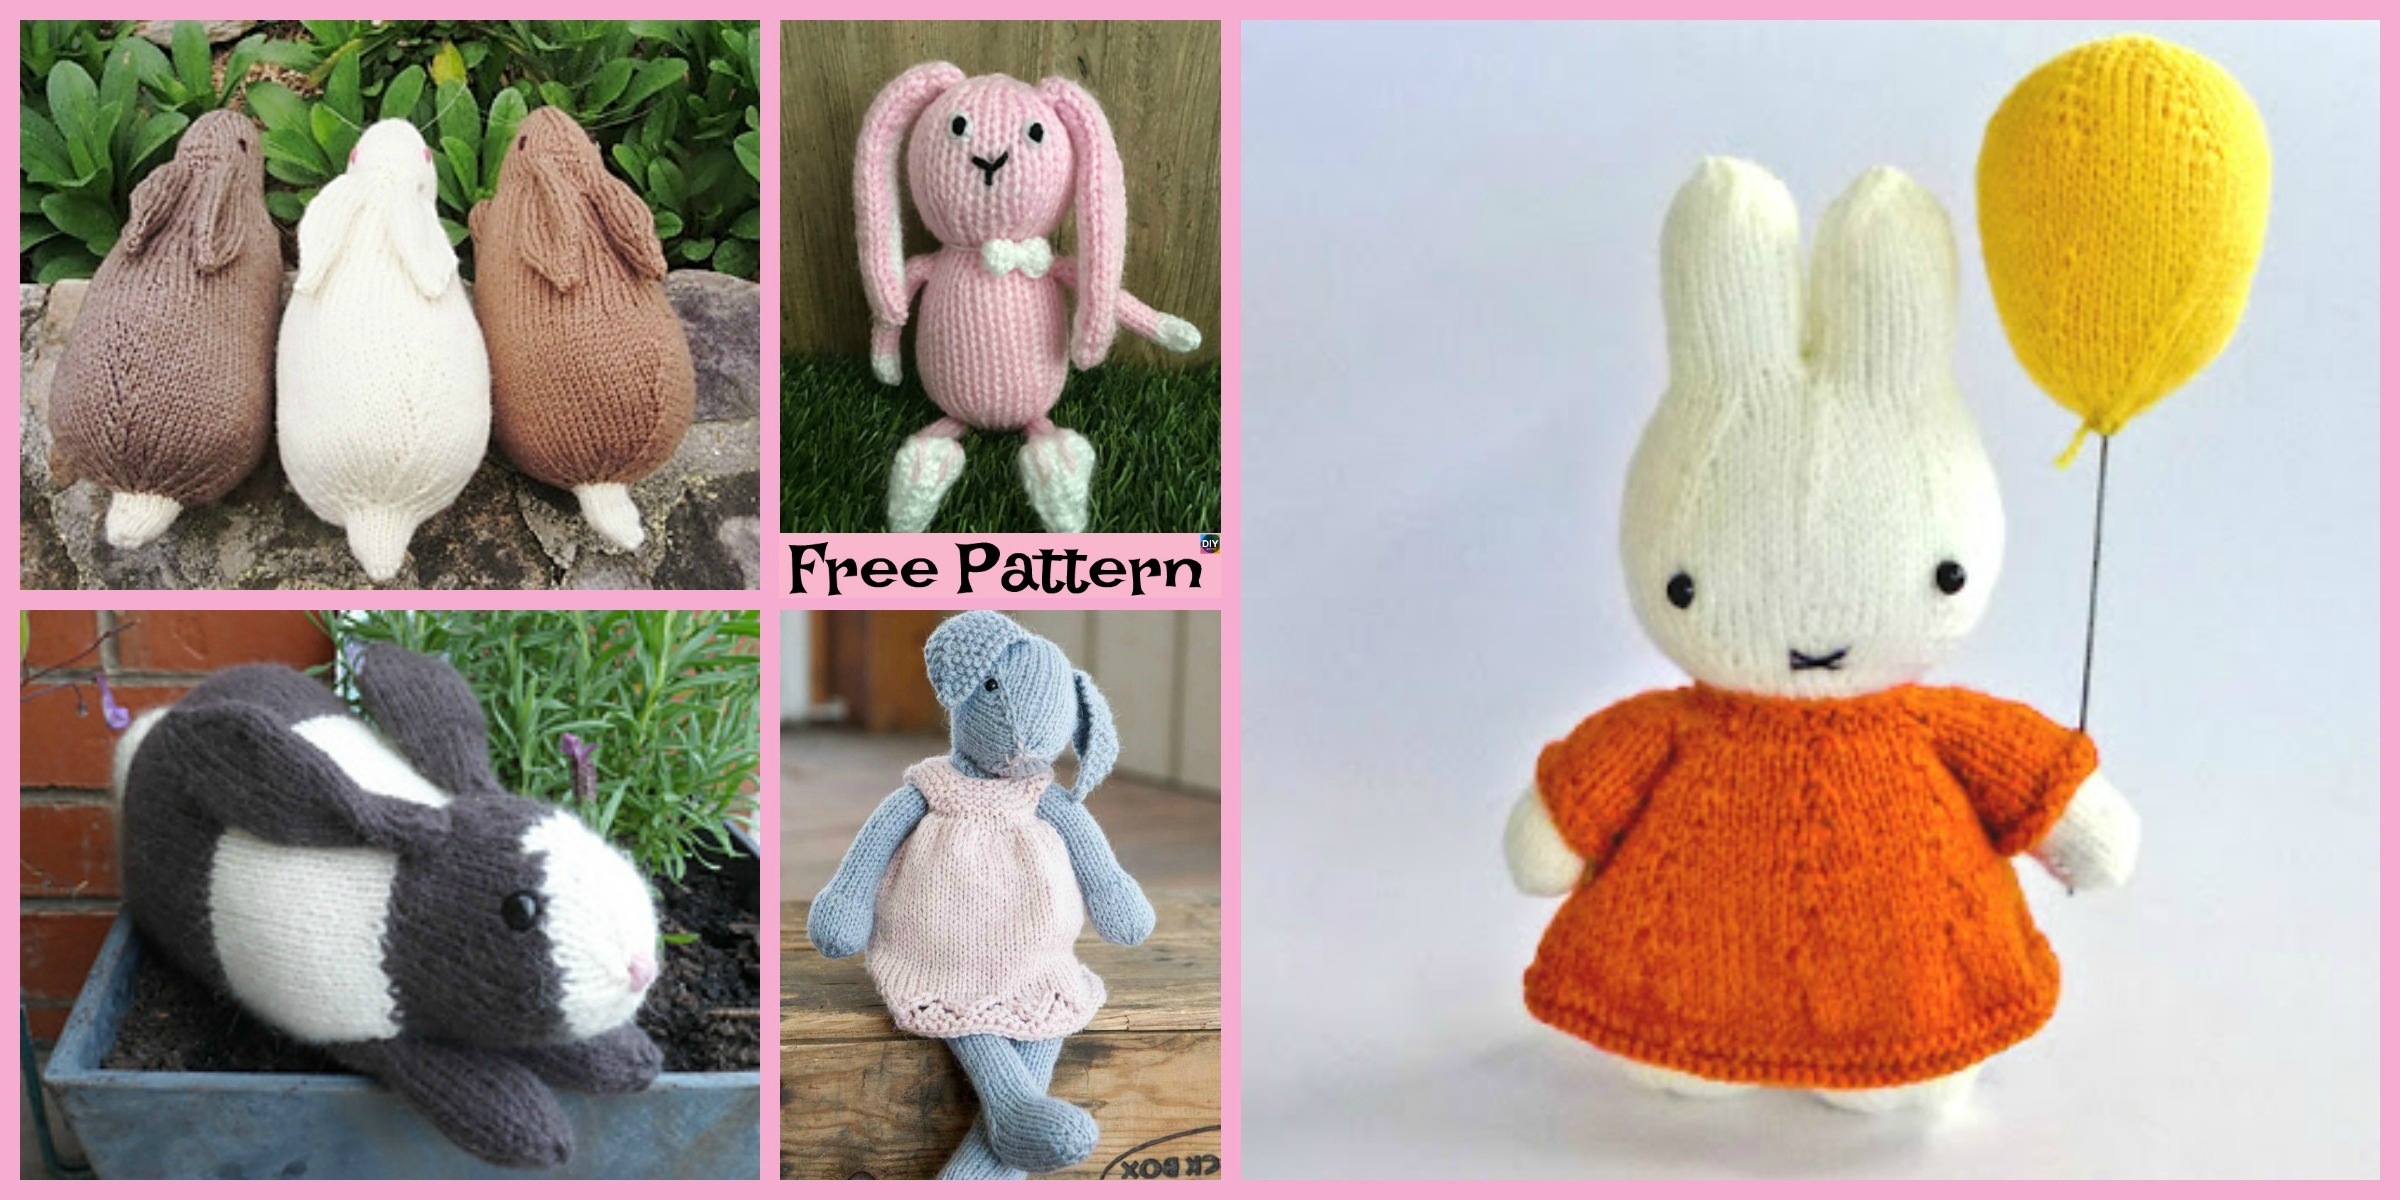 8 Knitted Adorable Bunny Free Patterns